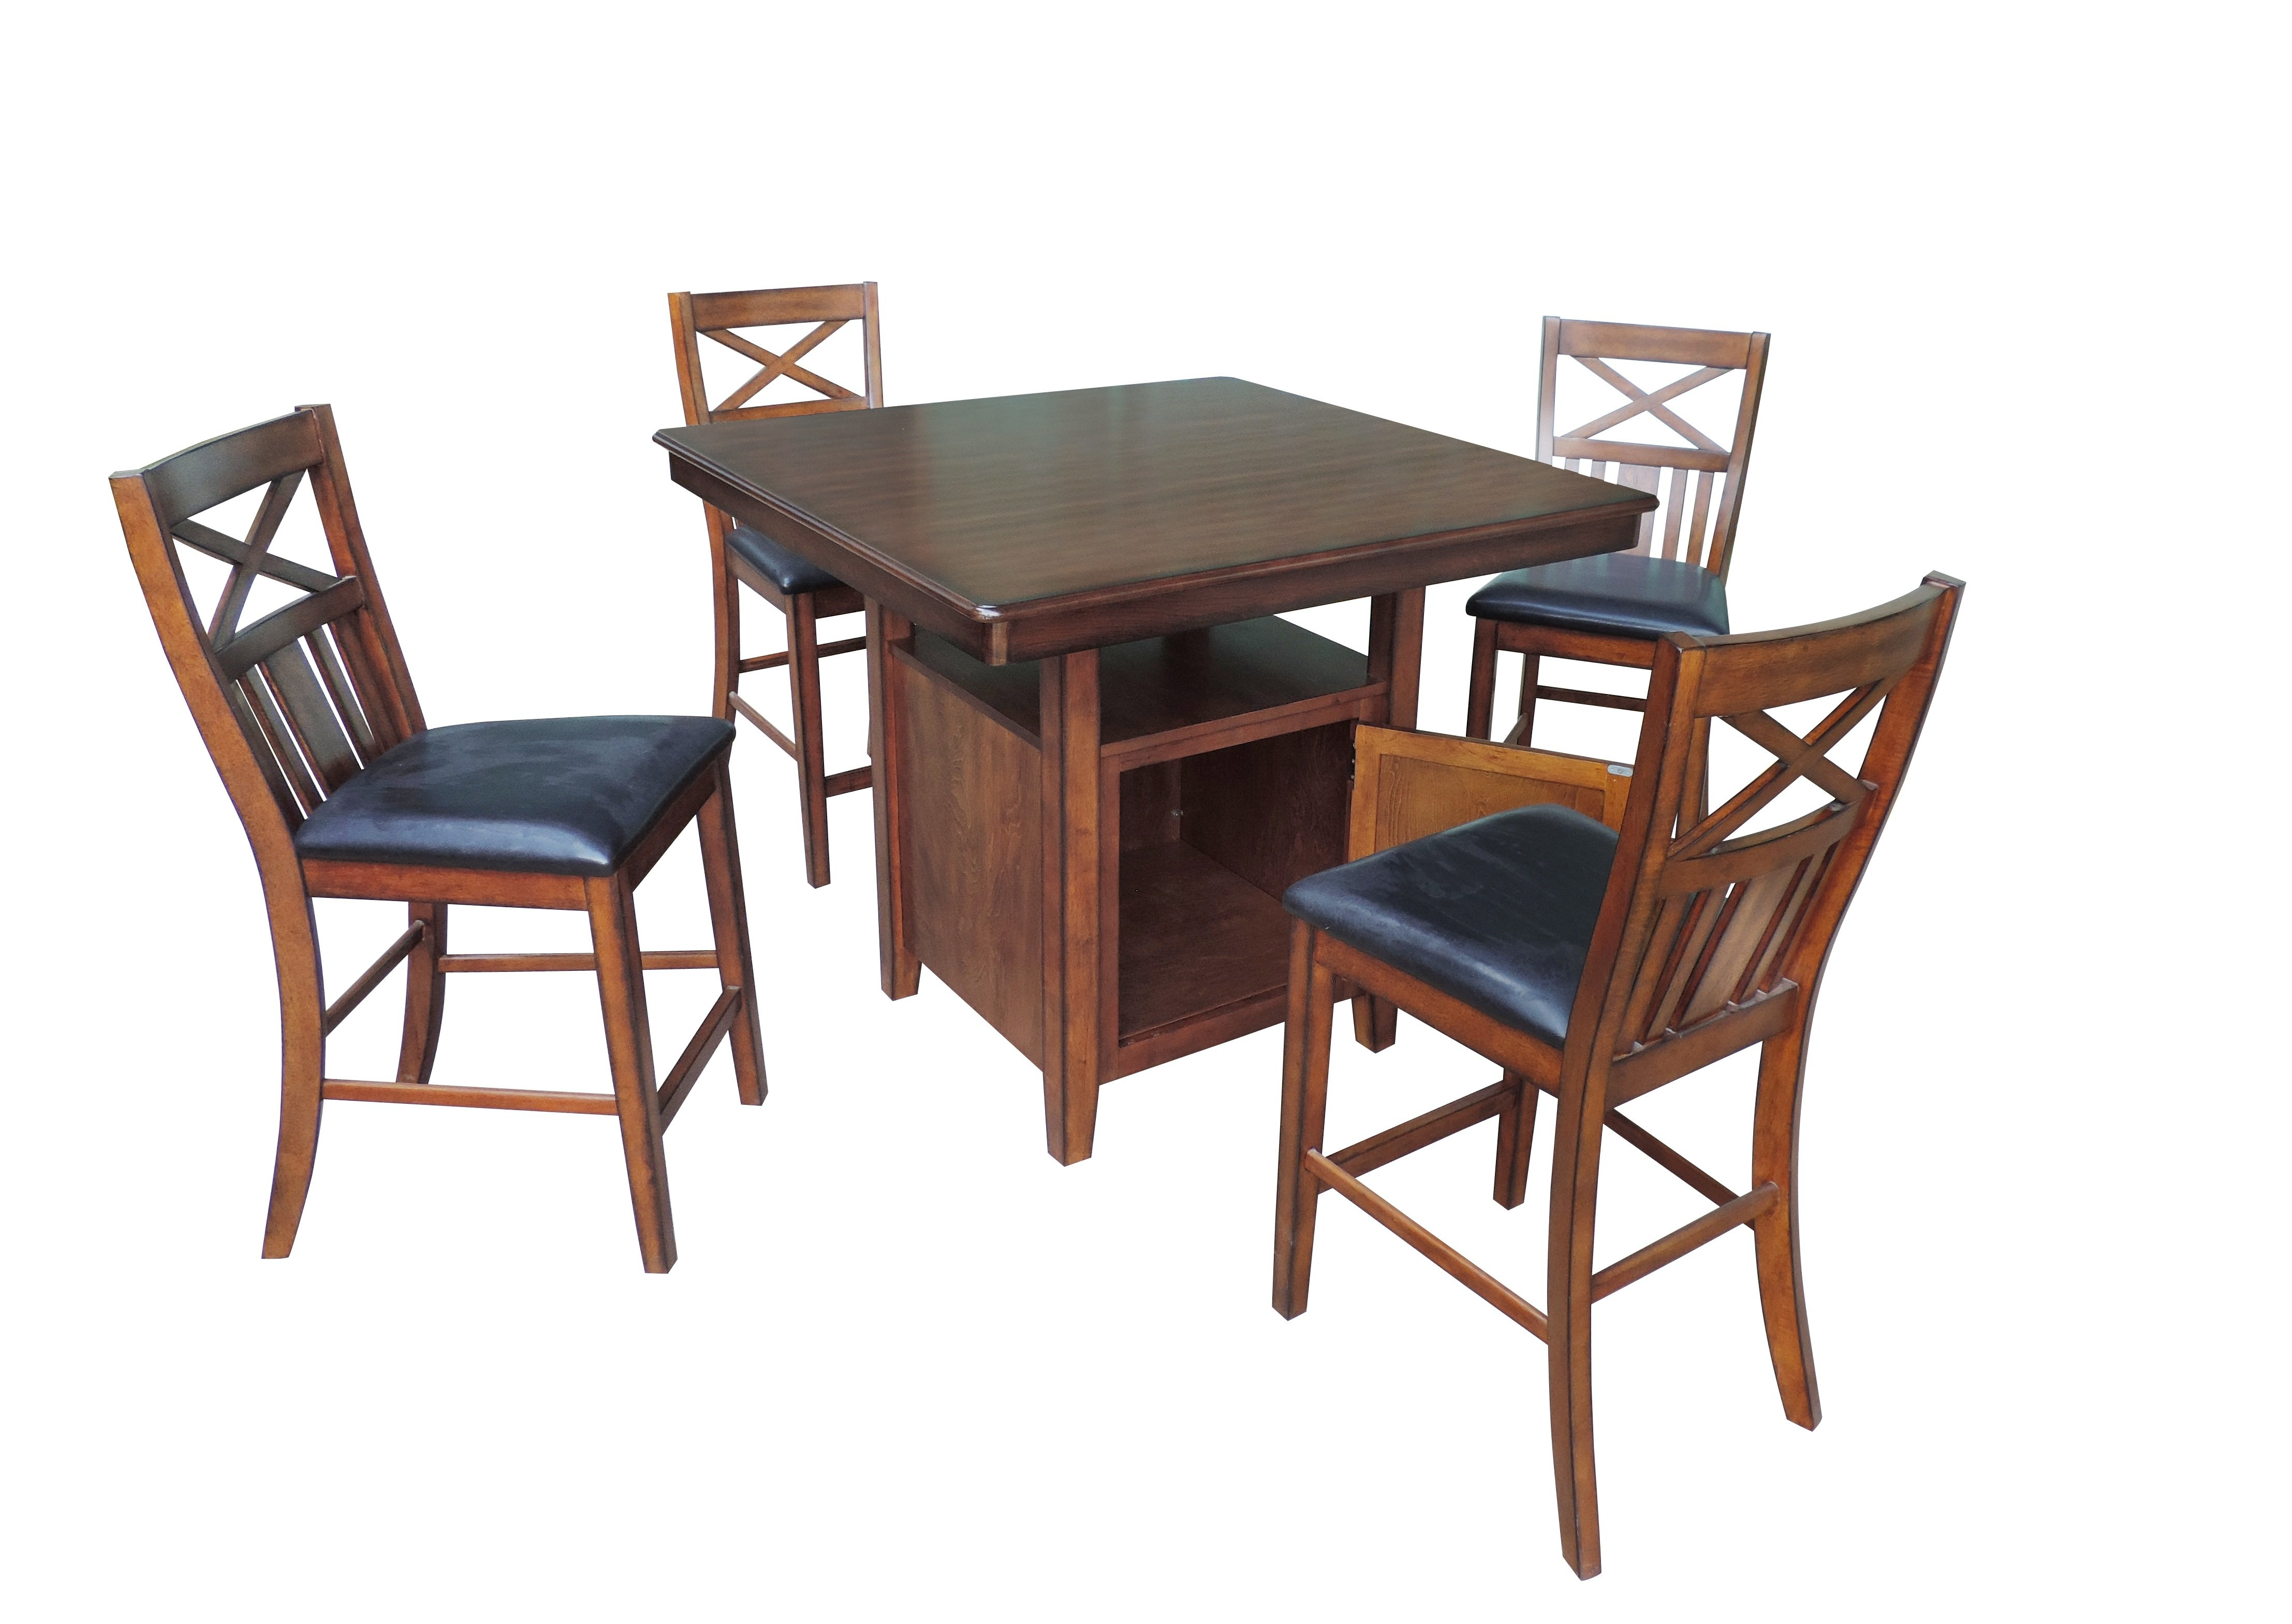 Ephraim 5 Piece Dining Sets Pertaining To Widely Used Nathanielhome 5 Piece Counter Height Dining Set (View 9 of 20)